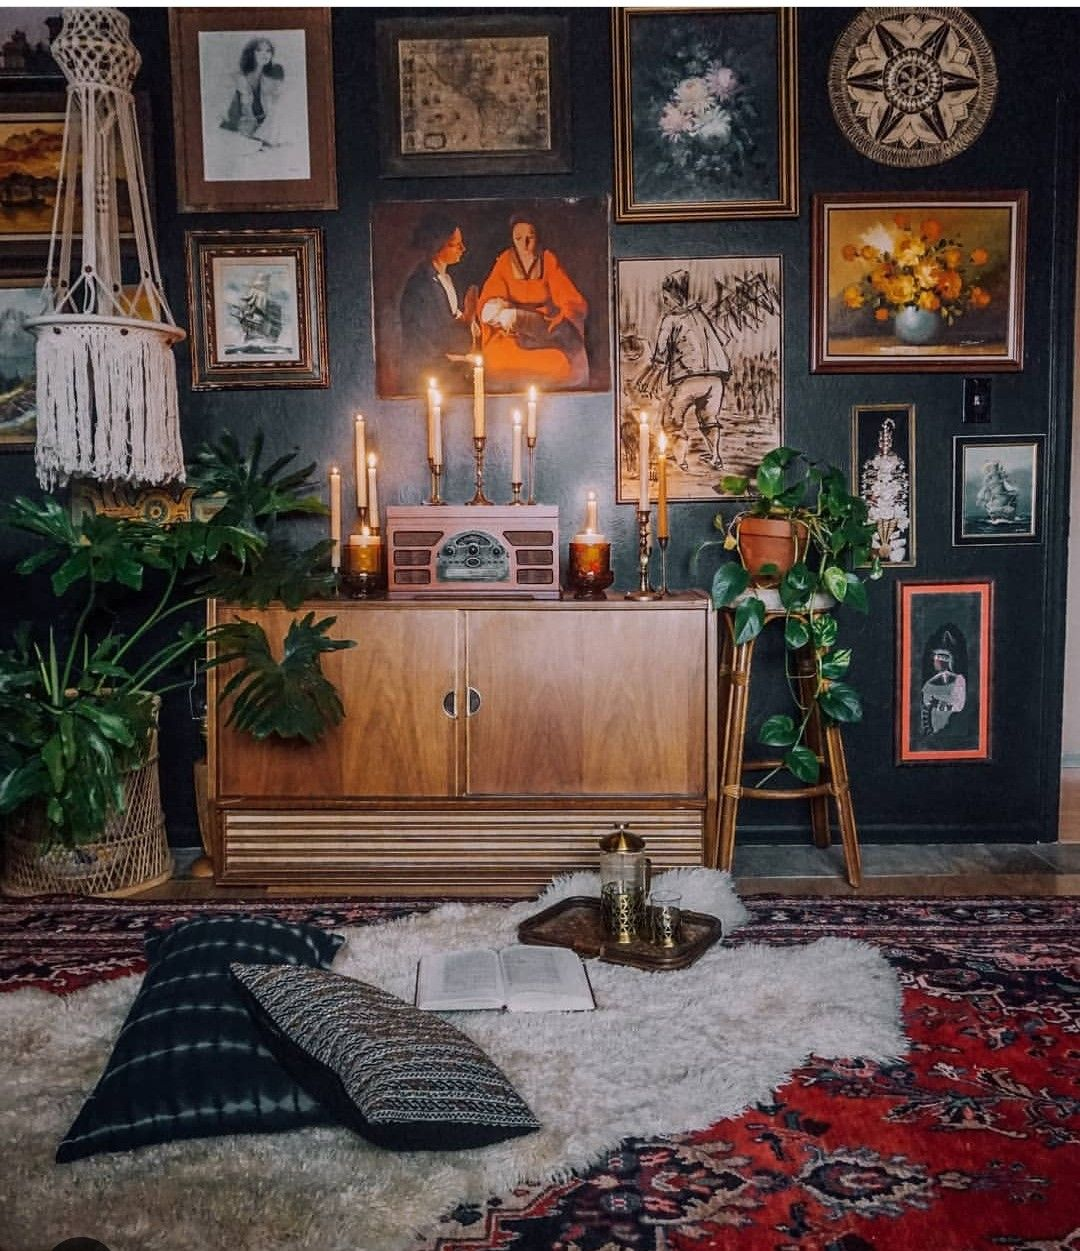 Pin on Eclectic decor